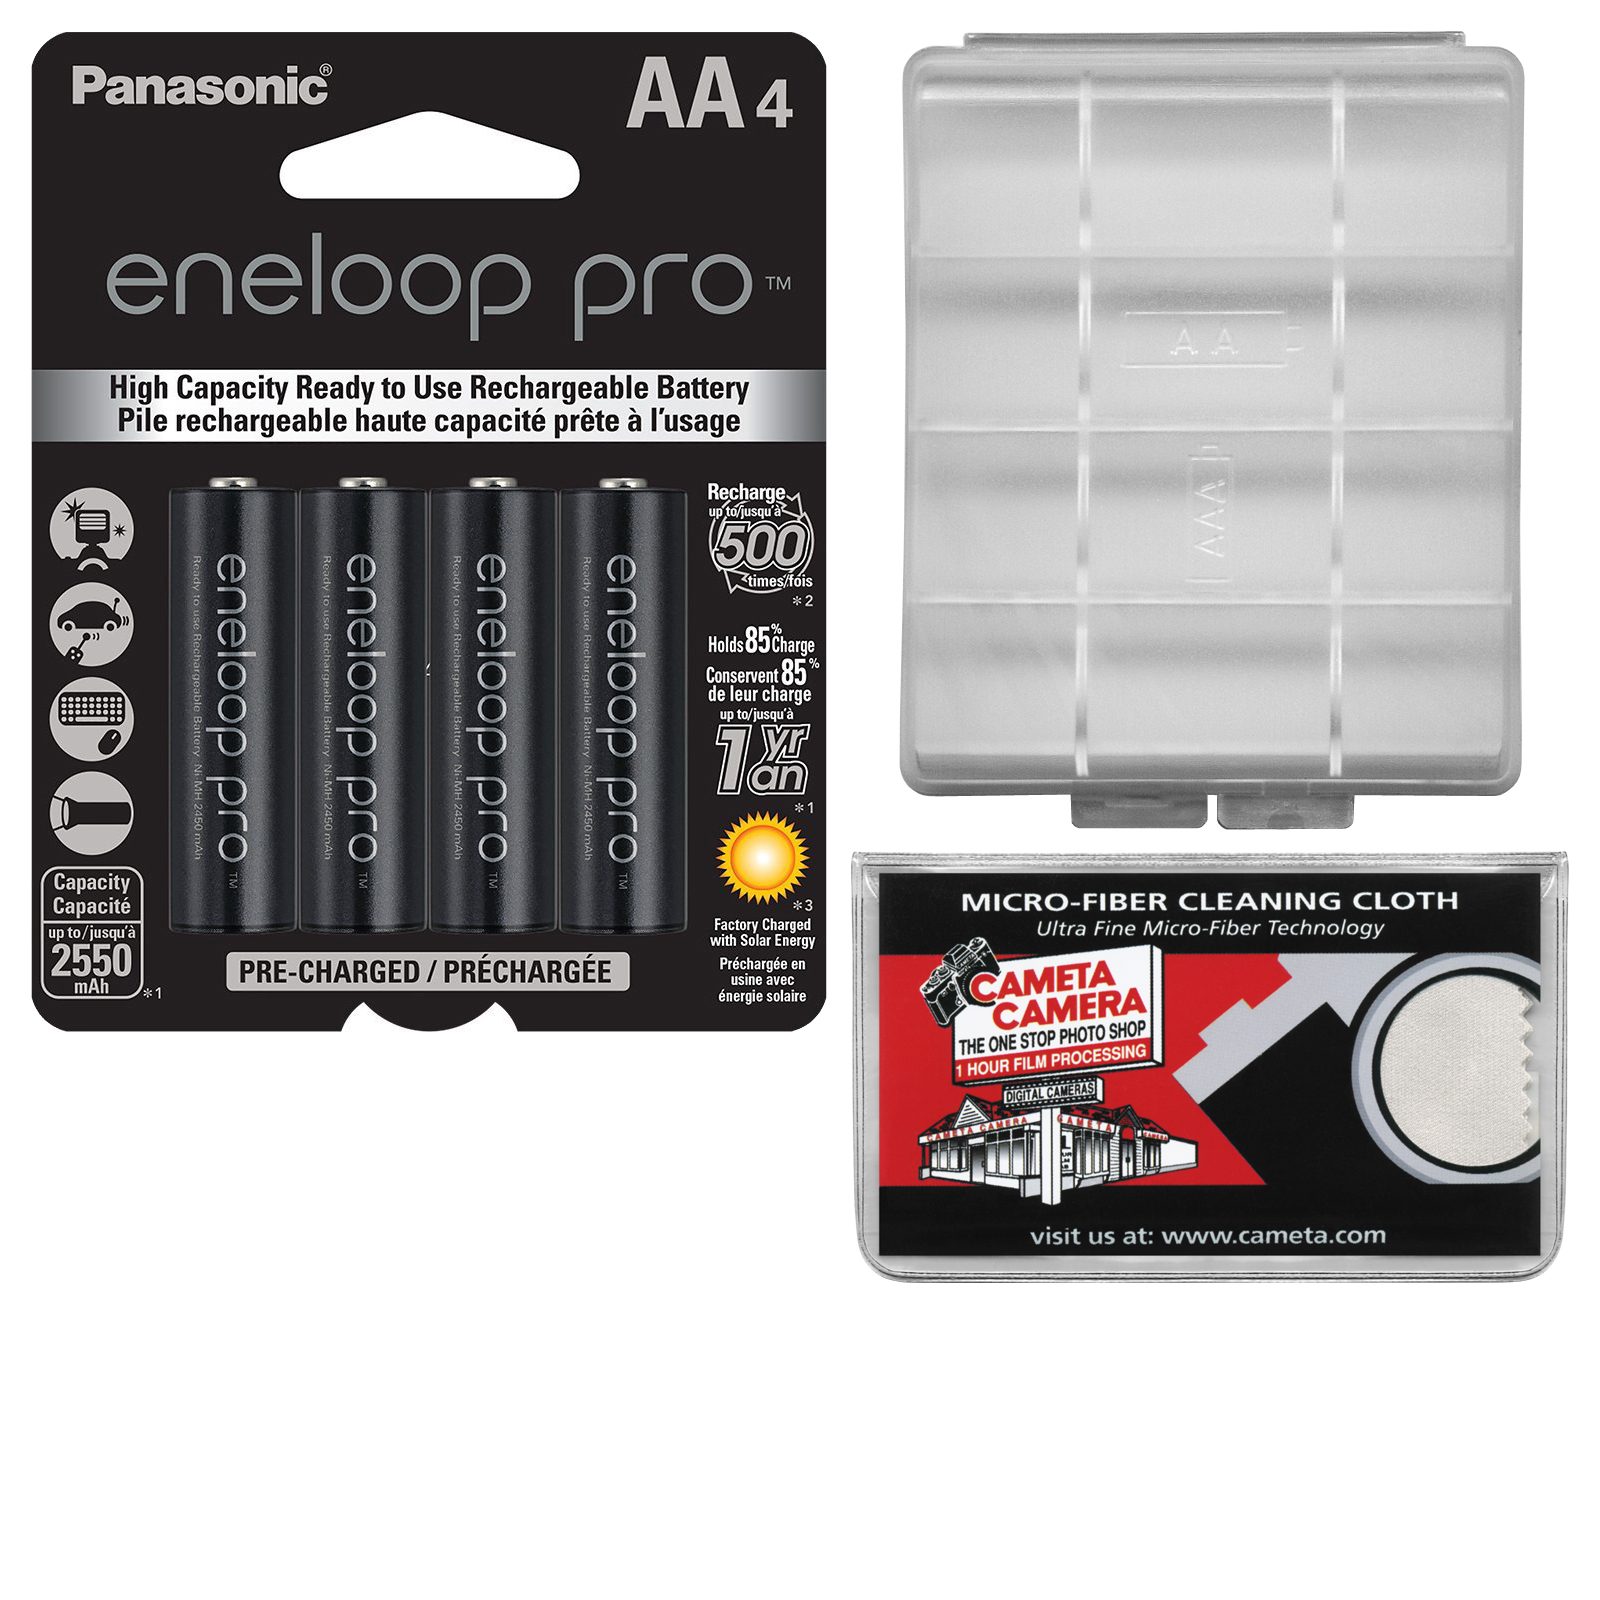 Panasonic eneloop Pro (4) AA 2550mAh Pre-Charged NiMH Rechargeable Batteries with Battery Case + Kit